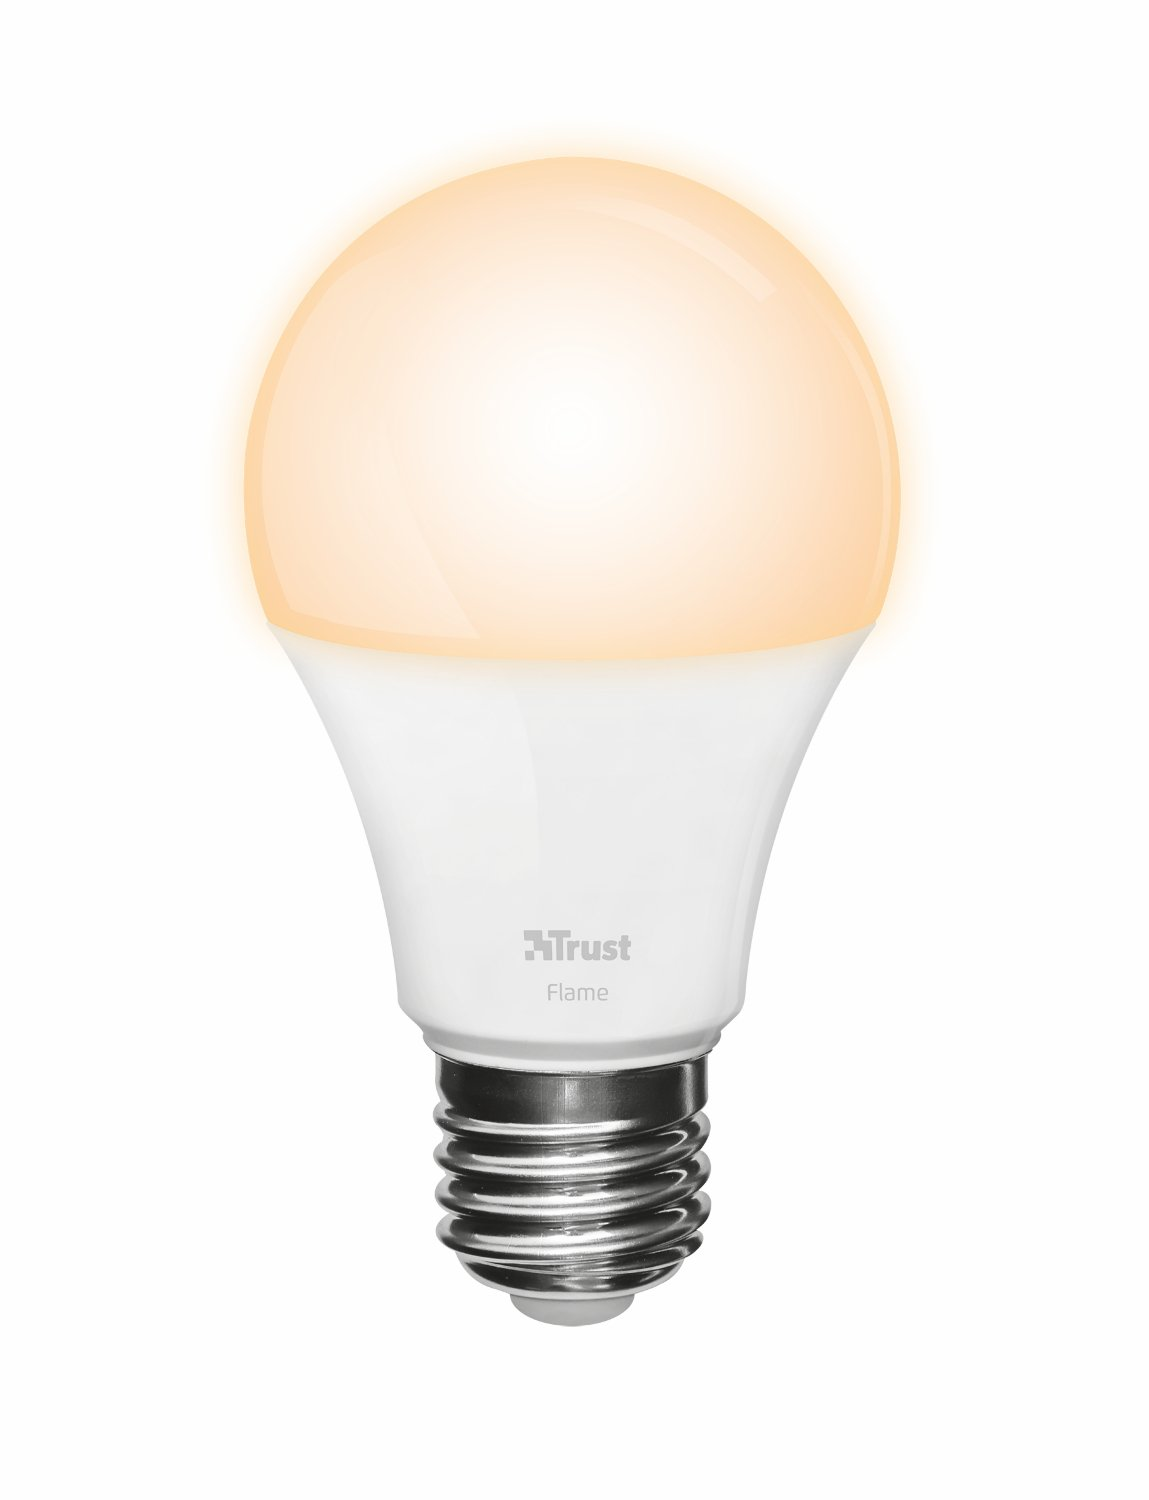 Trust Smart Home ZLED-2209 - Bombilla LED Inteligente Regulable, luz cálida, Color Blanco: Amazon.es: Informática